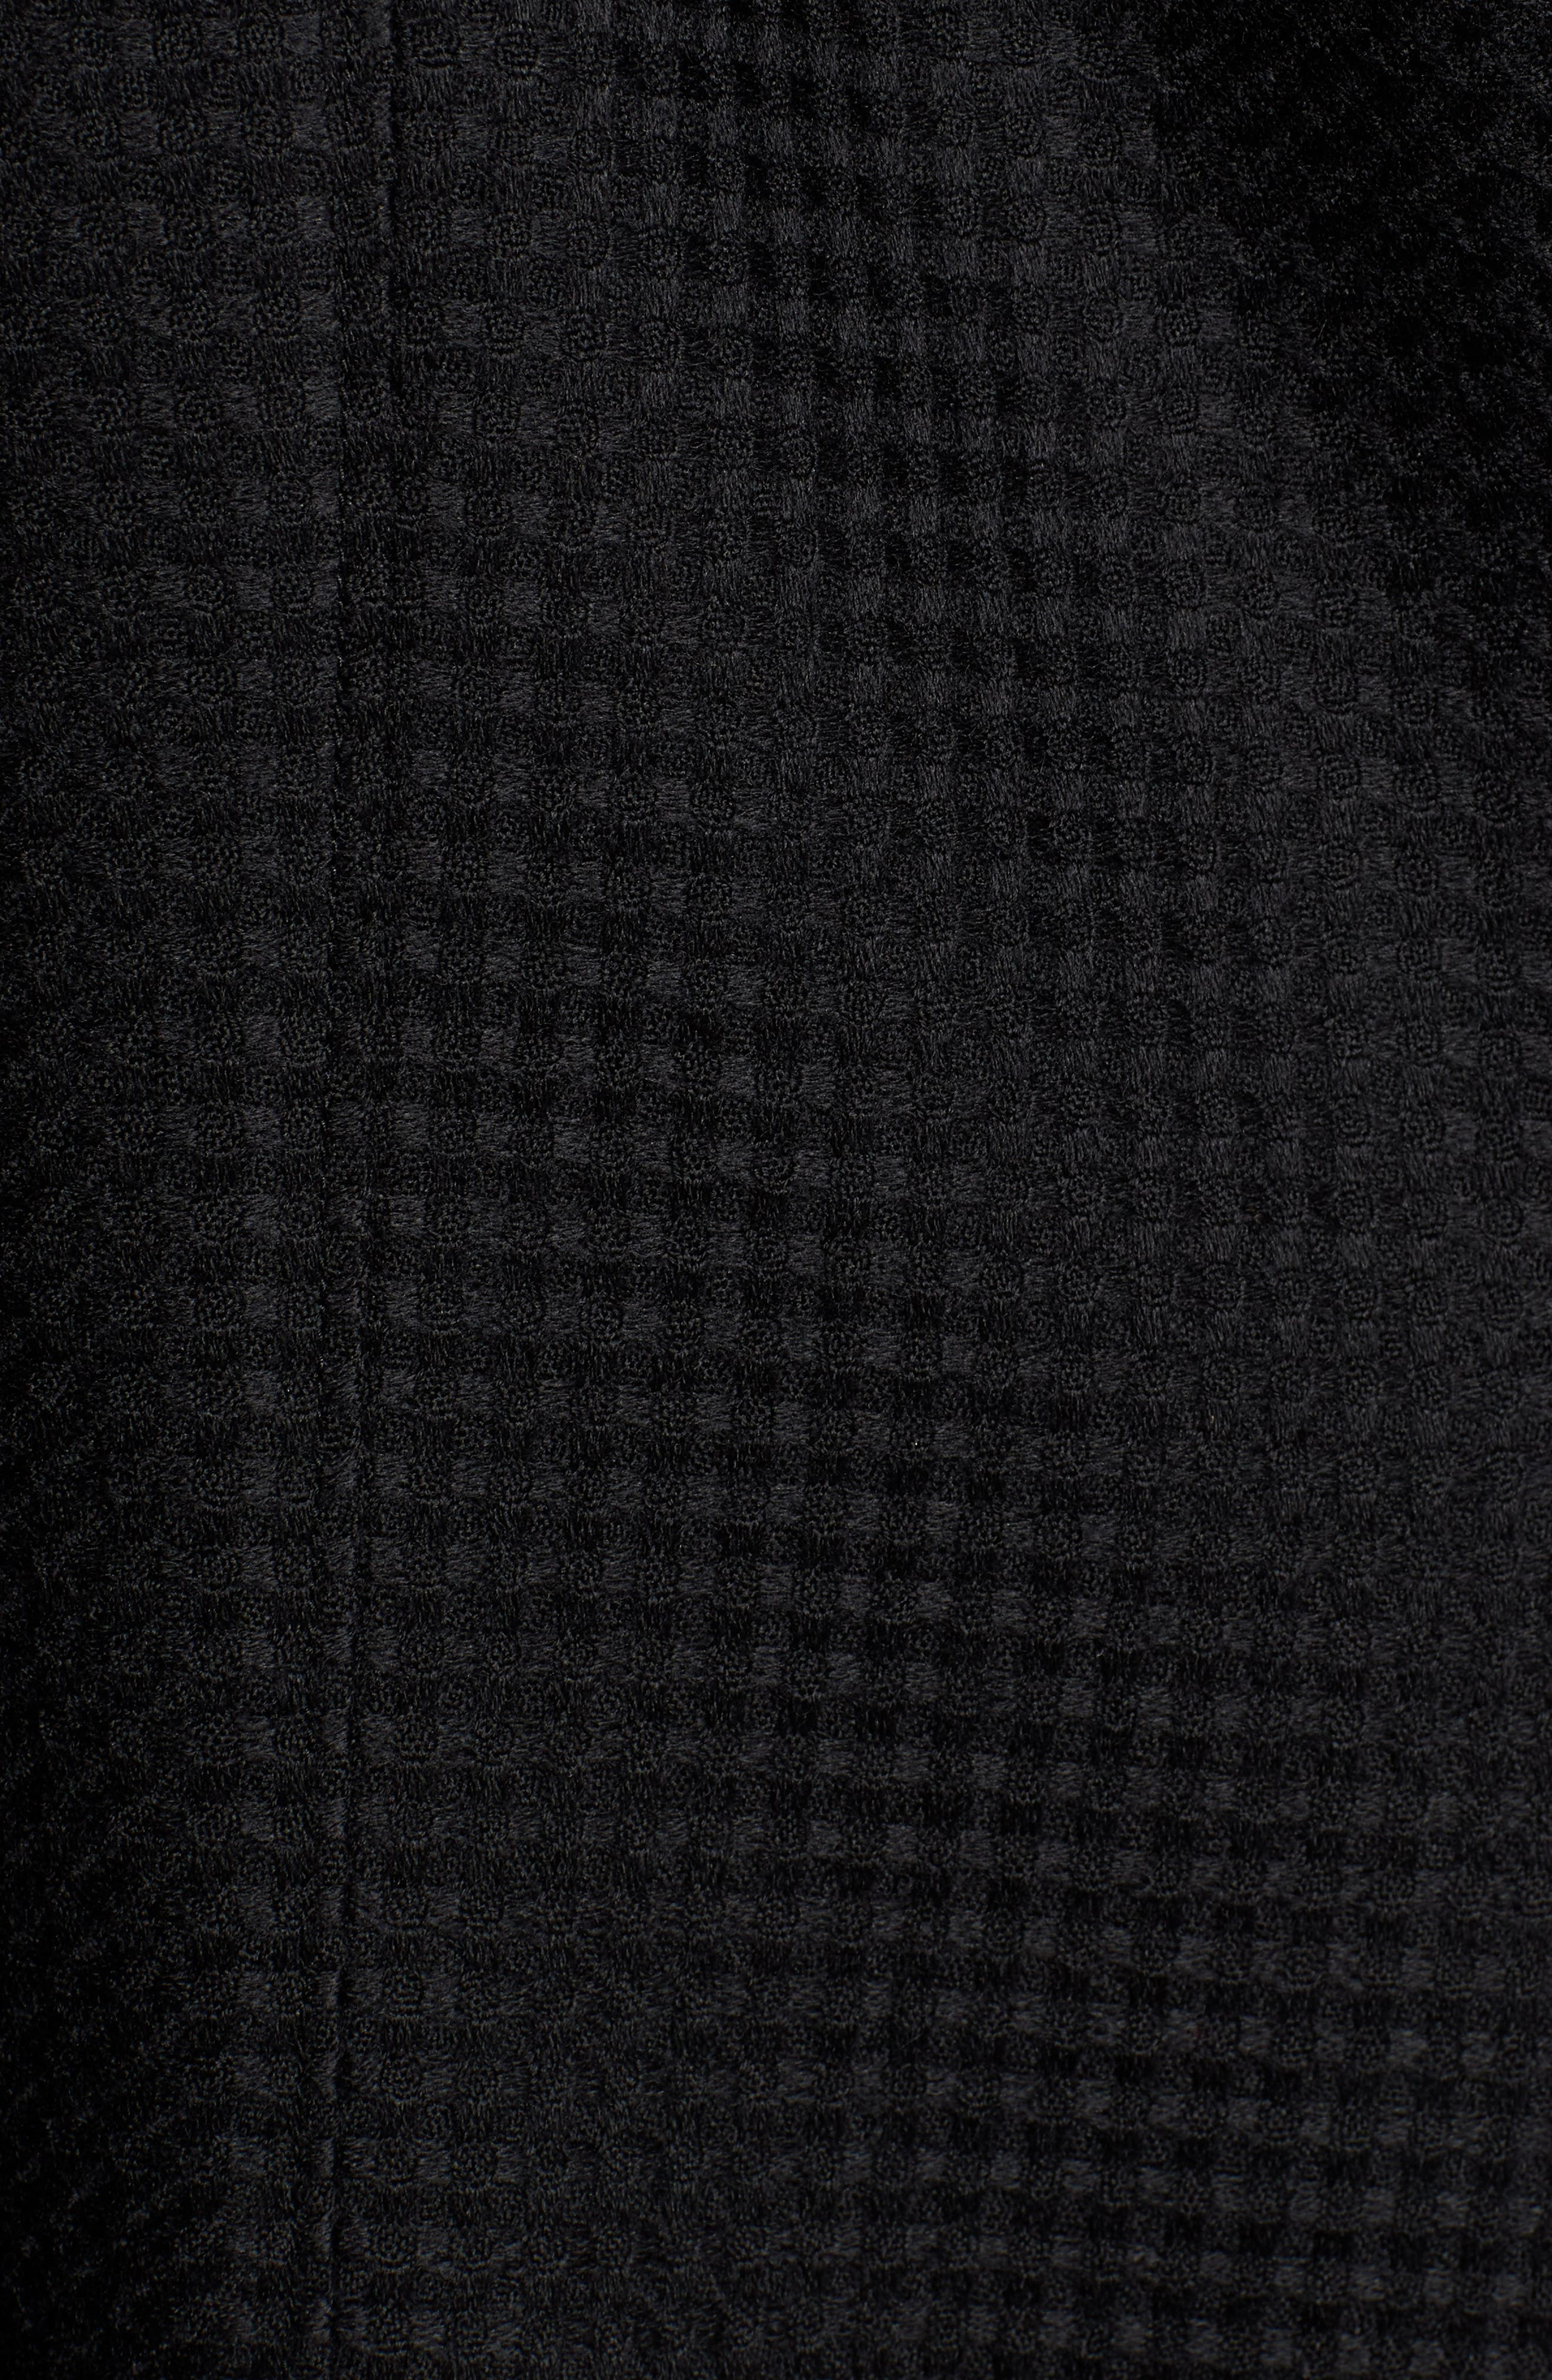 Downhill Tailored Wool Sport Coat,                             Alternate thumbnail 6, color,                             001